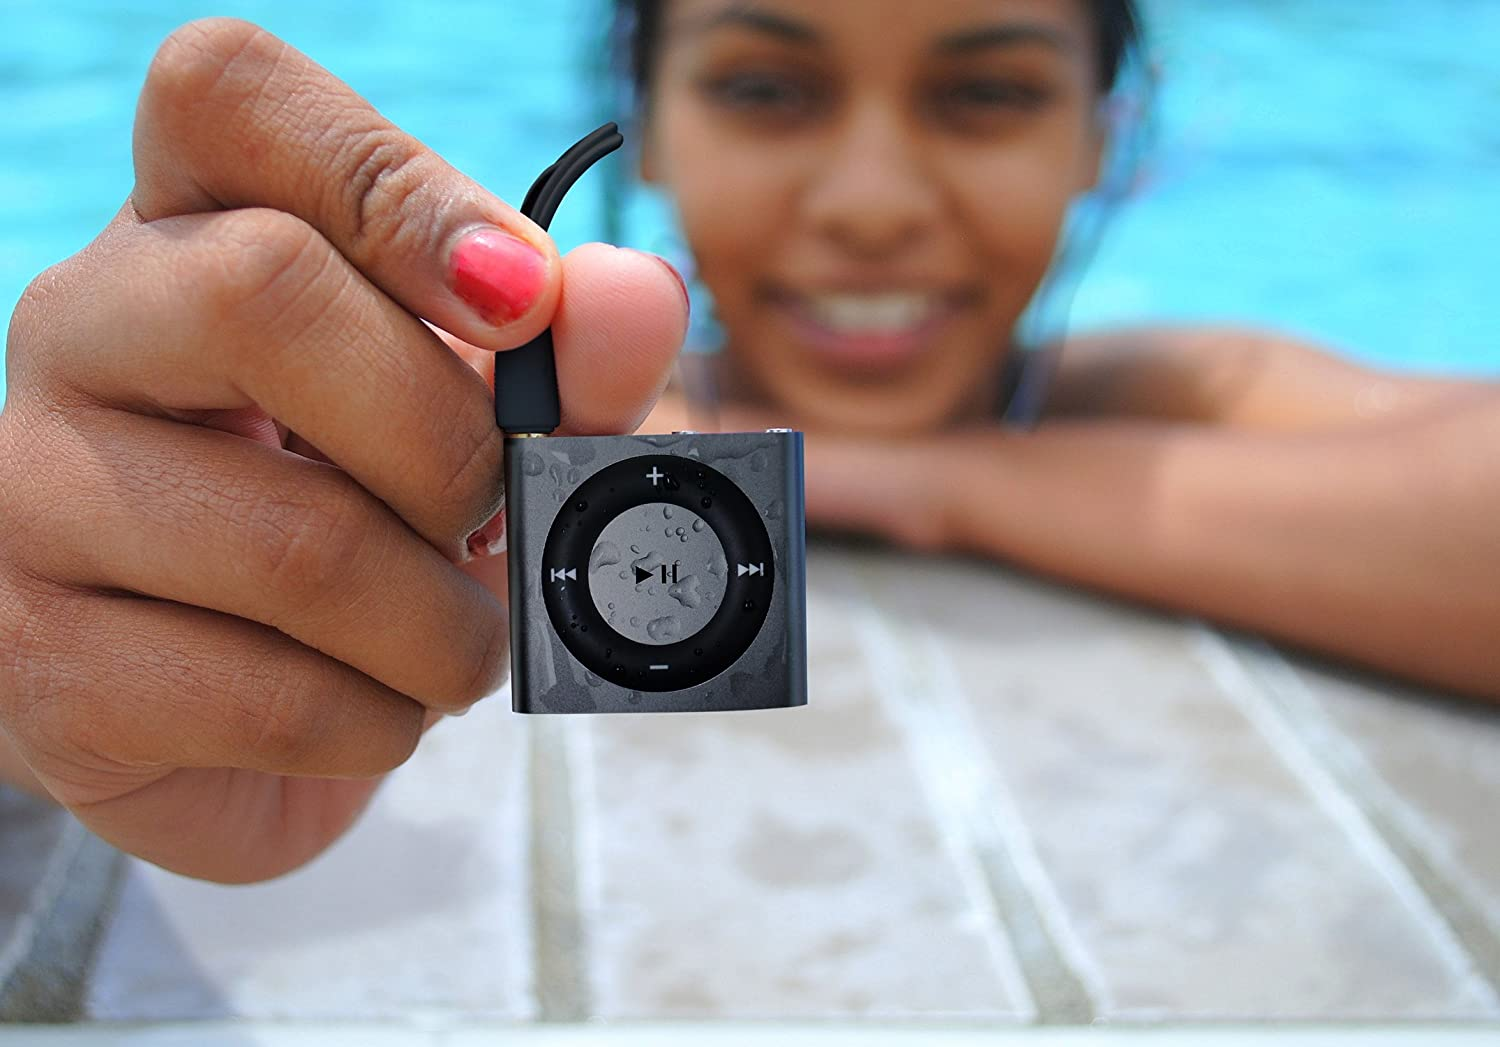 and Fitgoo Underwater Audio 100/% Waterproofing Compatible with iPod Shuffle Swimbuds Flip Space Gray AquaGuard